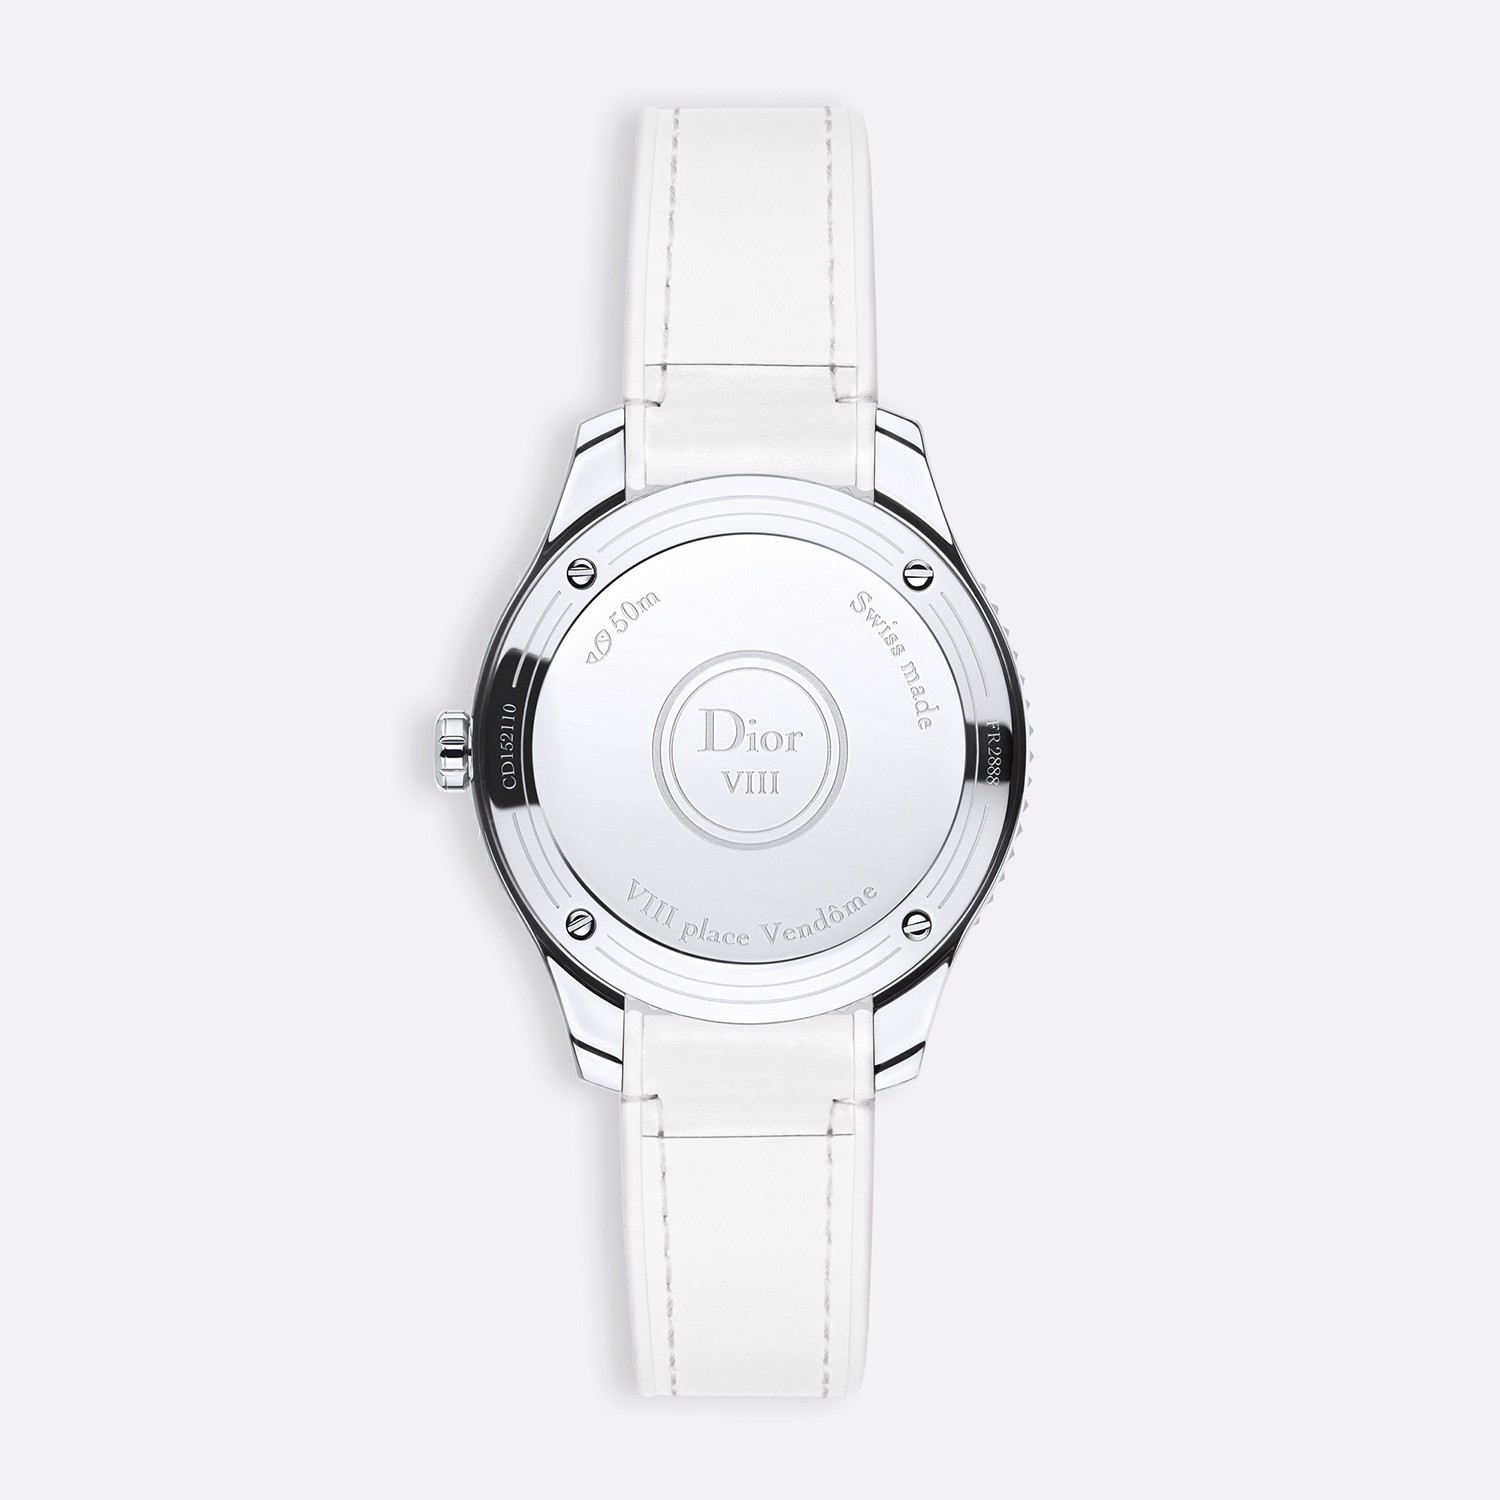 Đồng hồ nữ Dior VIII Montaigne White Leather Strap Ø 32mm